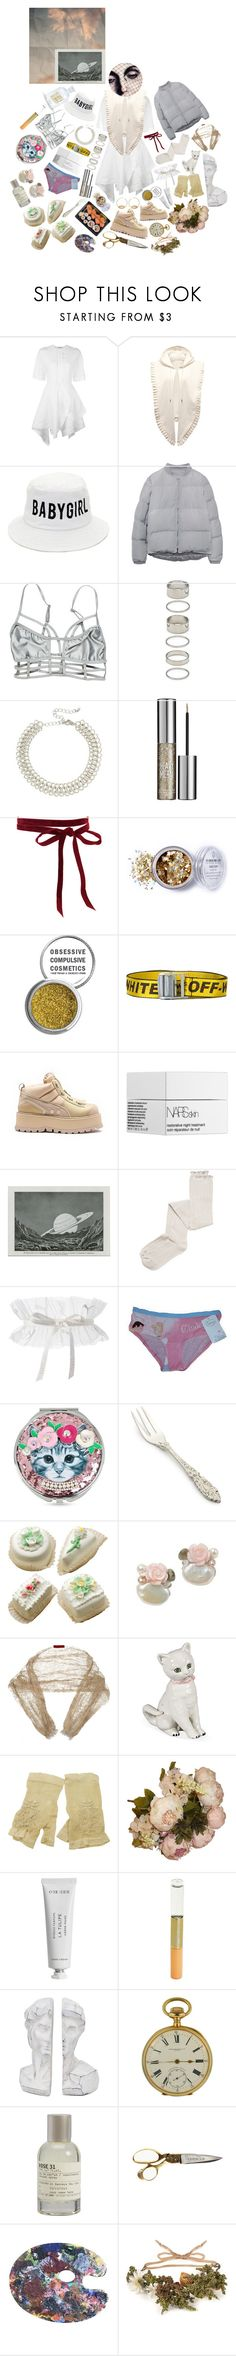 """""""Angel Hoe"""" by anna-pensky ❤ liked on Polyvore featuring J.W. Anderson, Forever 21, Kenneth Jay Lane, Urban Decay, Aurélie Bidermann, Obsessive Compulsive Cosmetics, Off-White, NARS Cosmetics, Intimately Free People and Disney"""